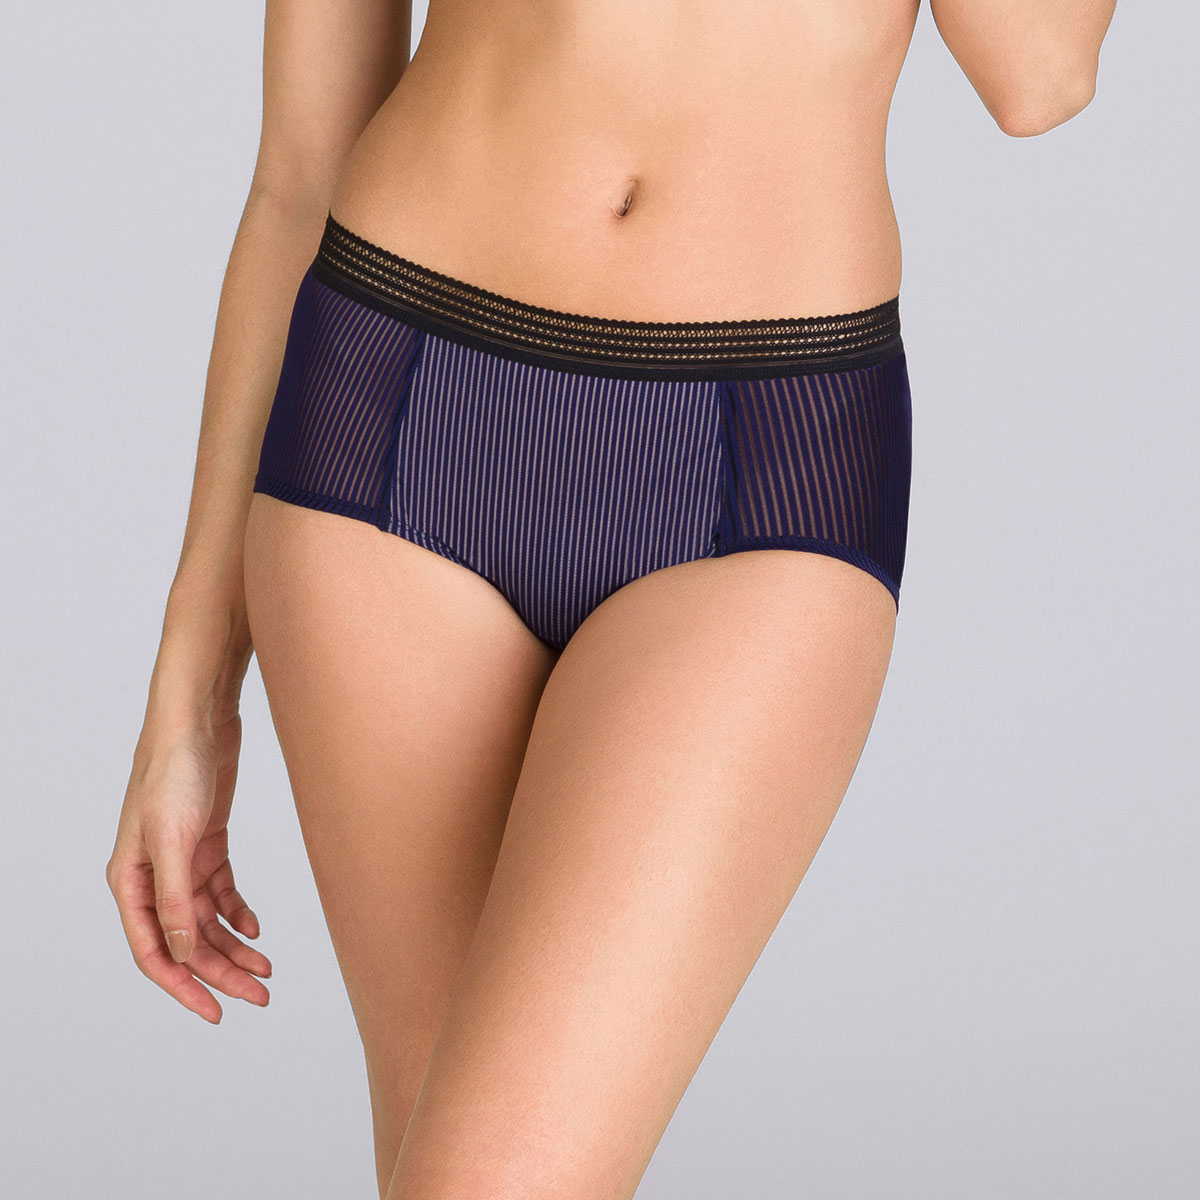 Shorty marine & noir - Smoking Chic-PLAYTEX